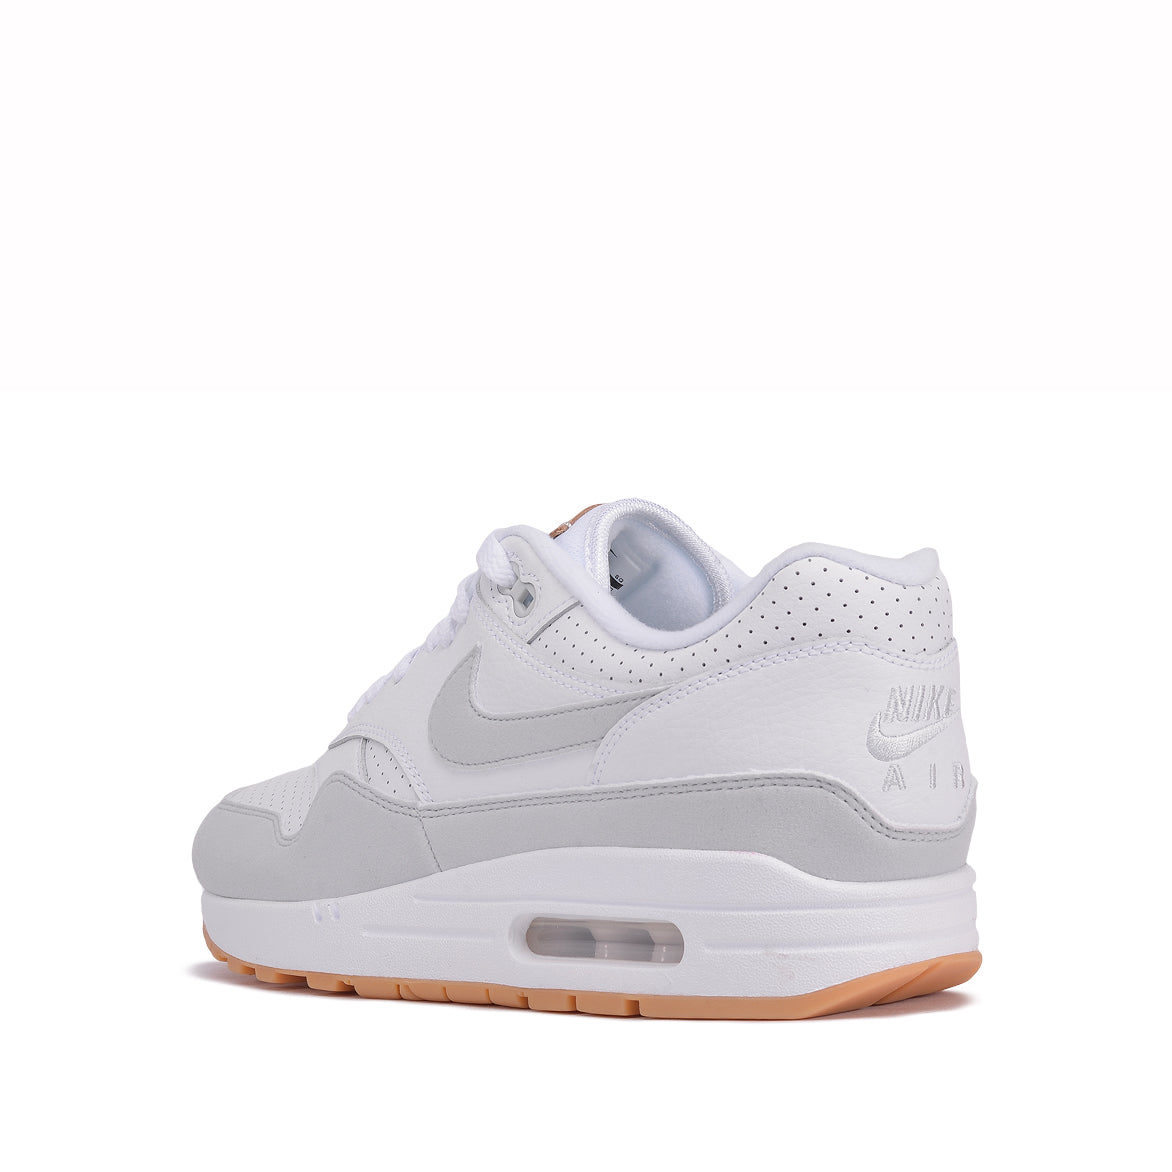 best website 5e6c6 11836 AIR MAX 1 - WHITE  PURE PLATINUM  GUM. NIKE